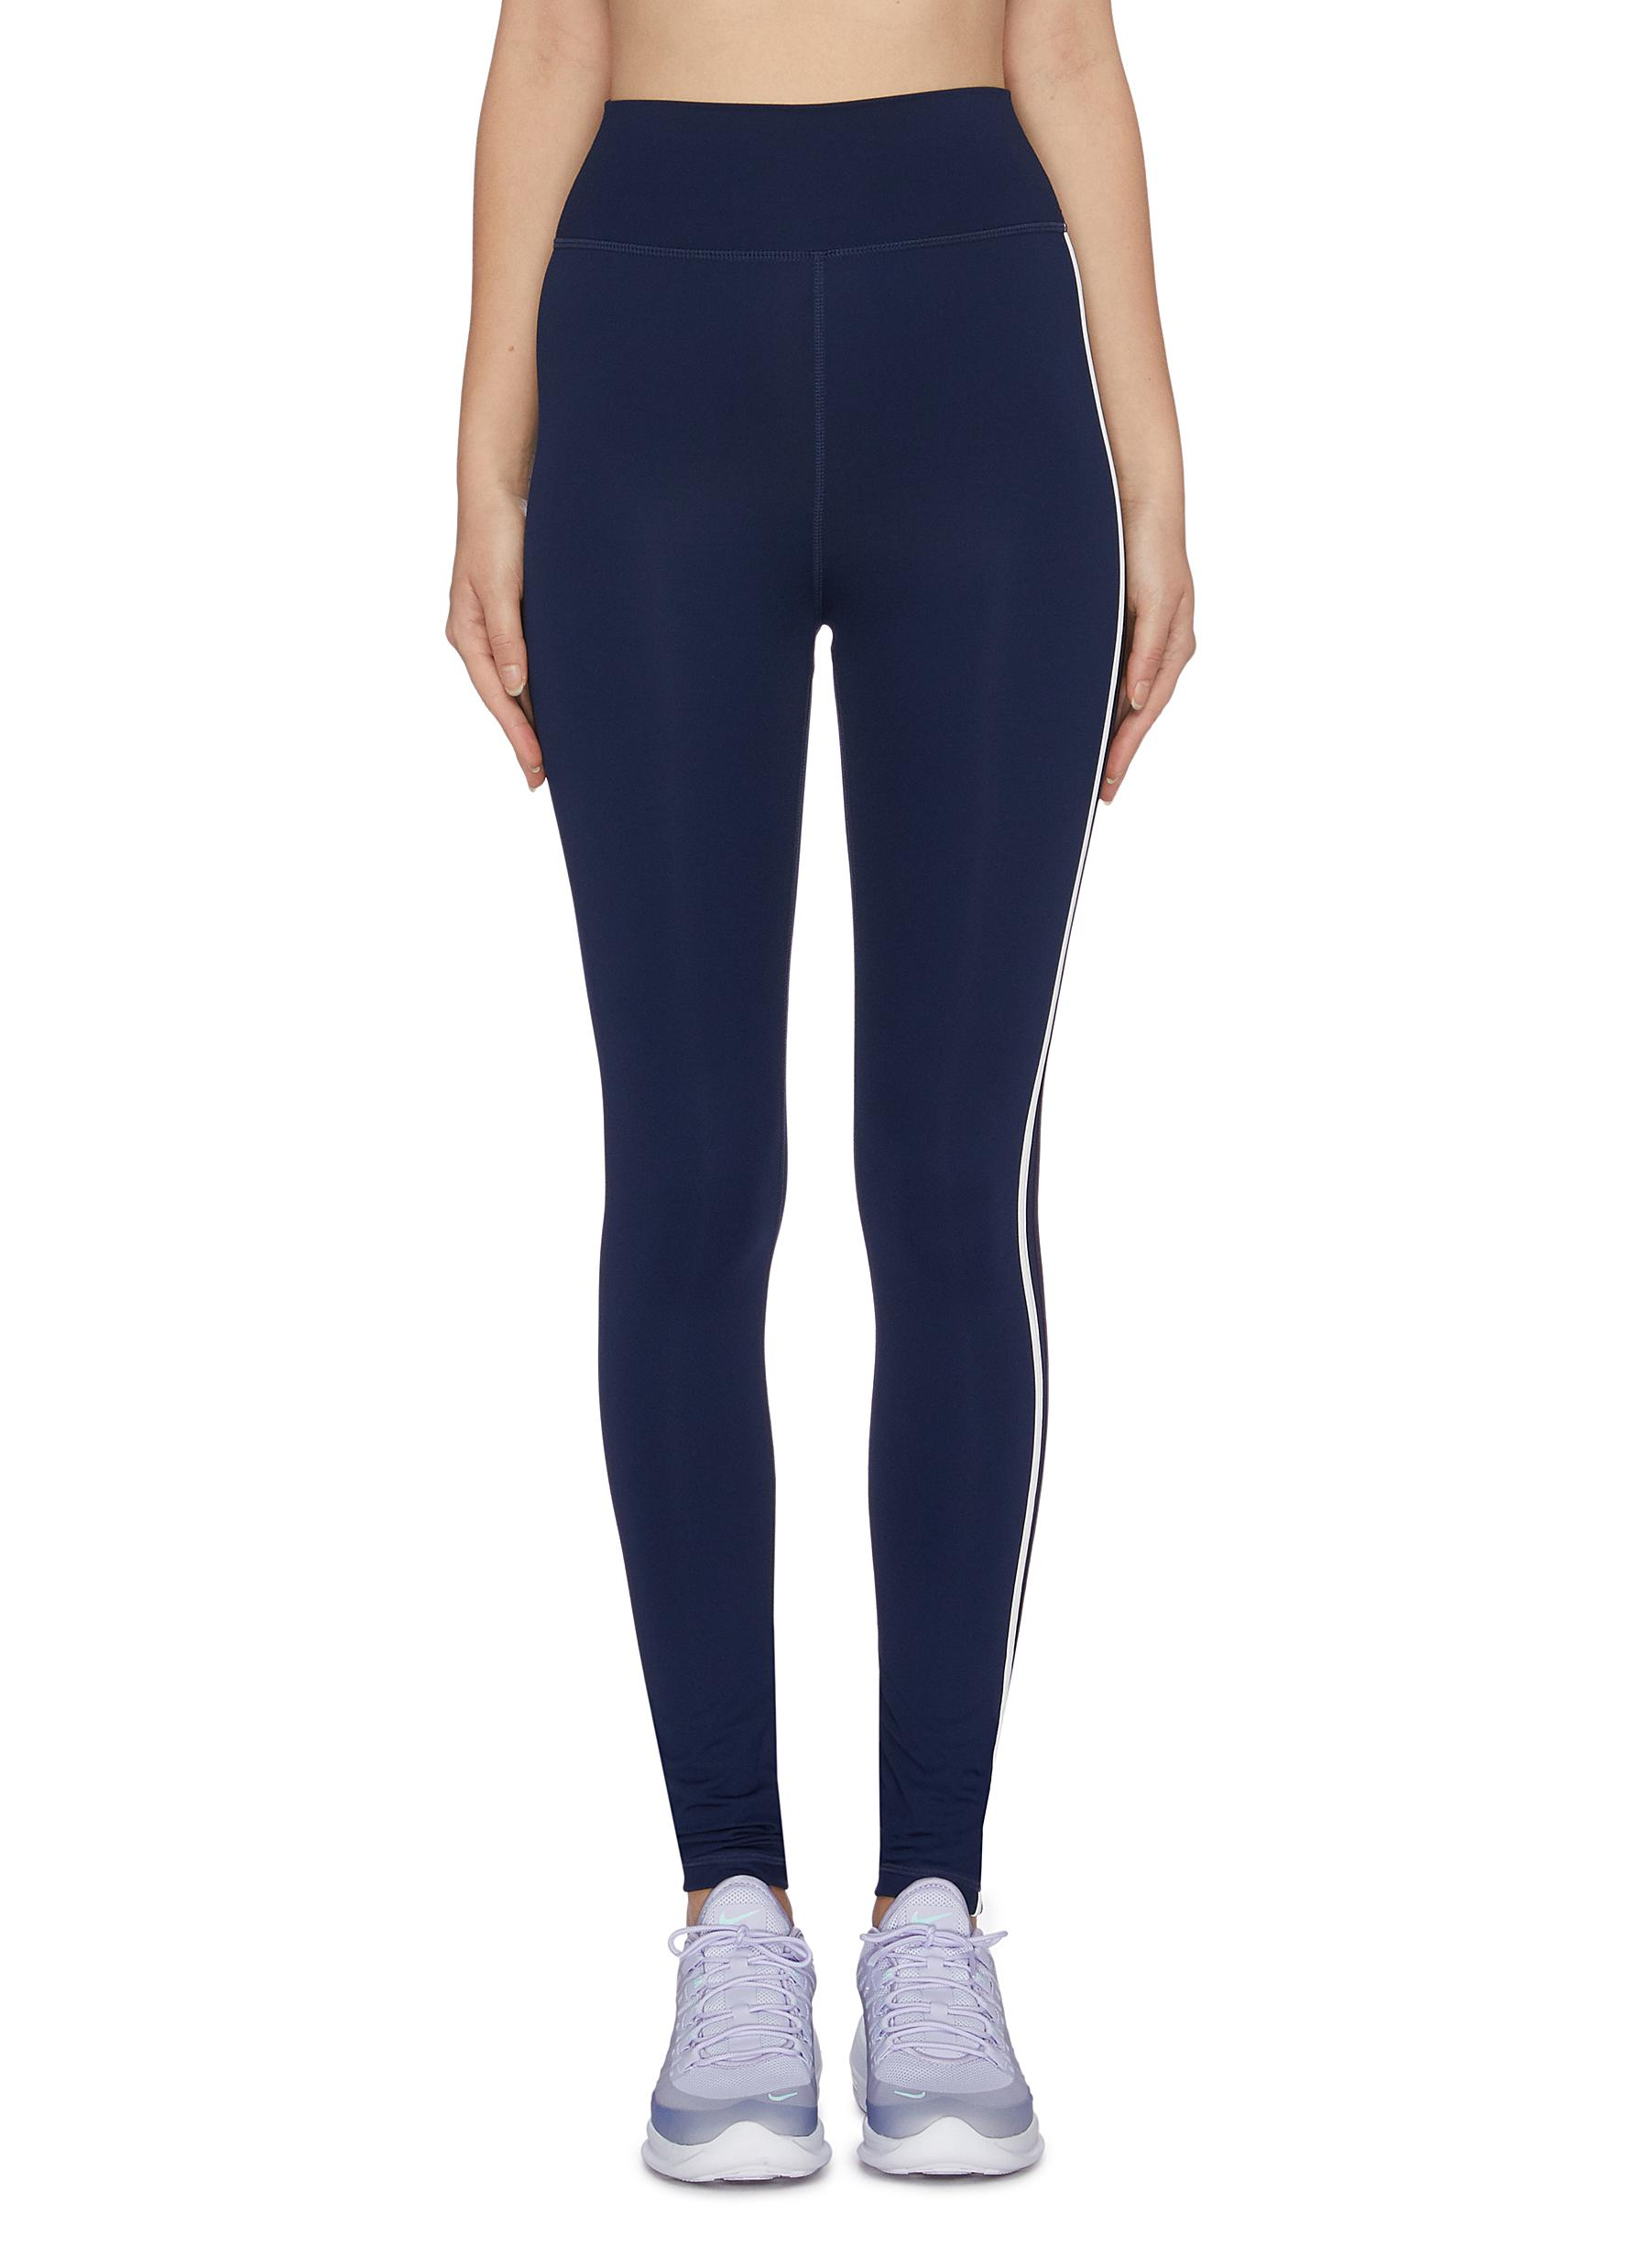 Dance stripe outseam leggings by The Upside